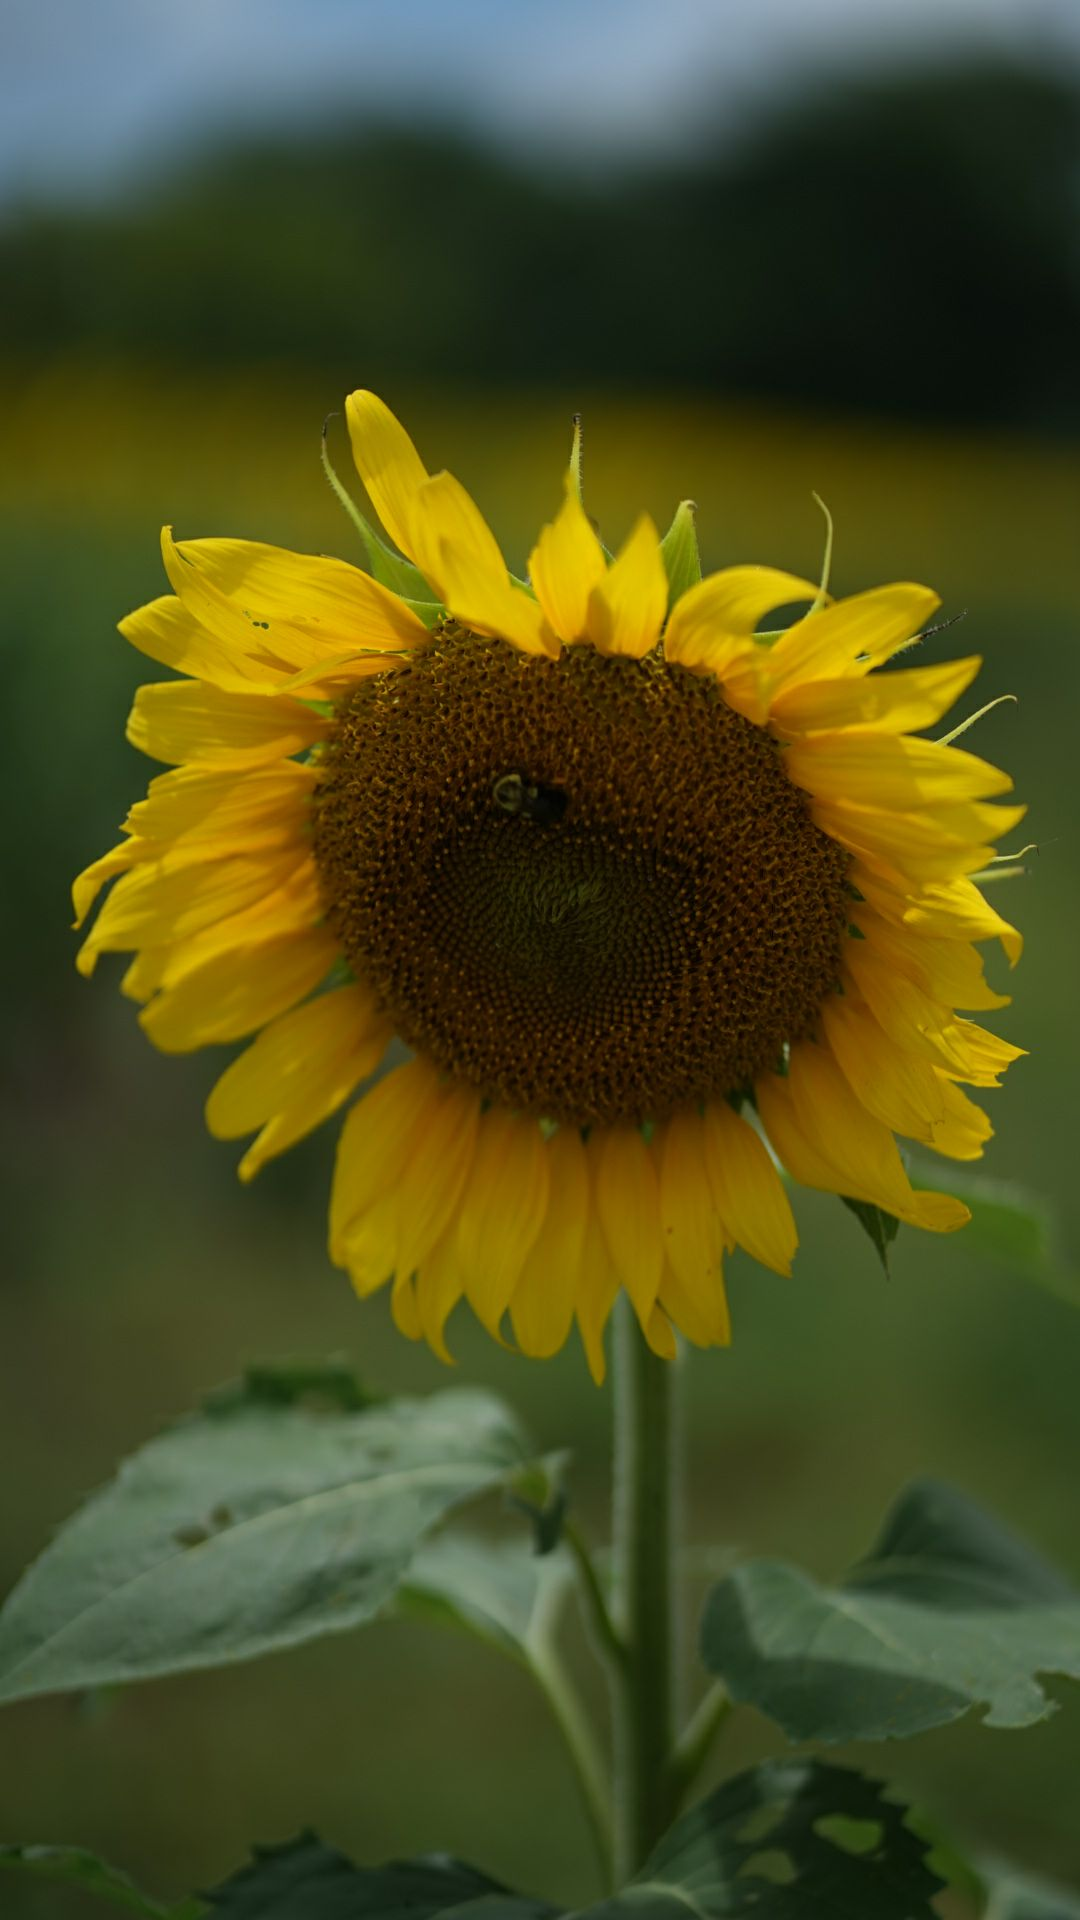 3 Lessons I Learned from a Sunflower